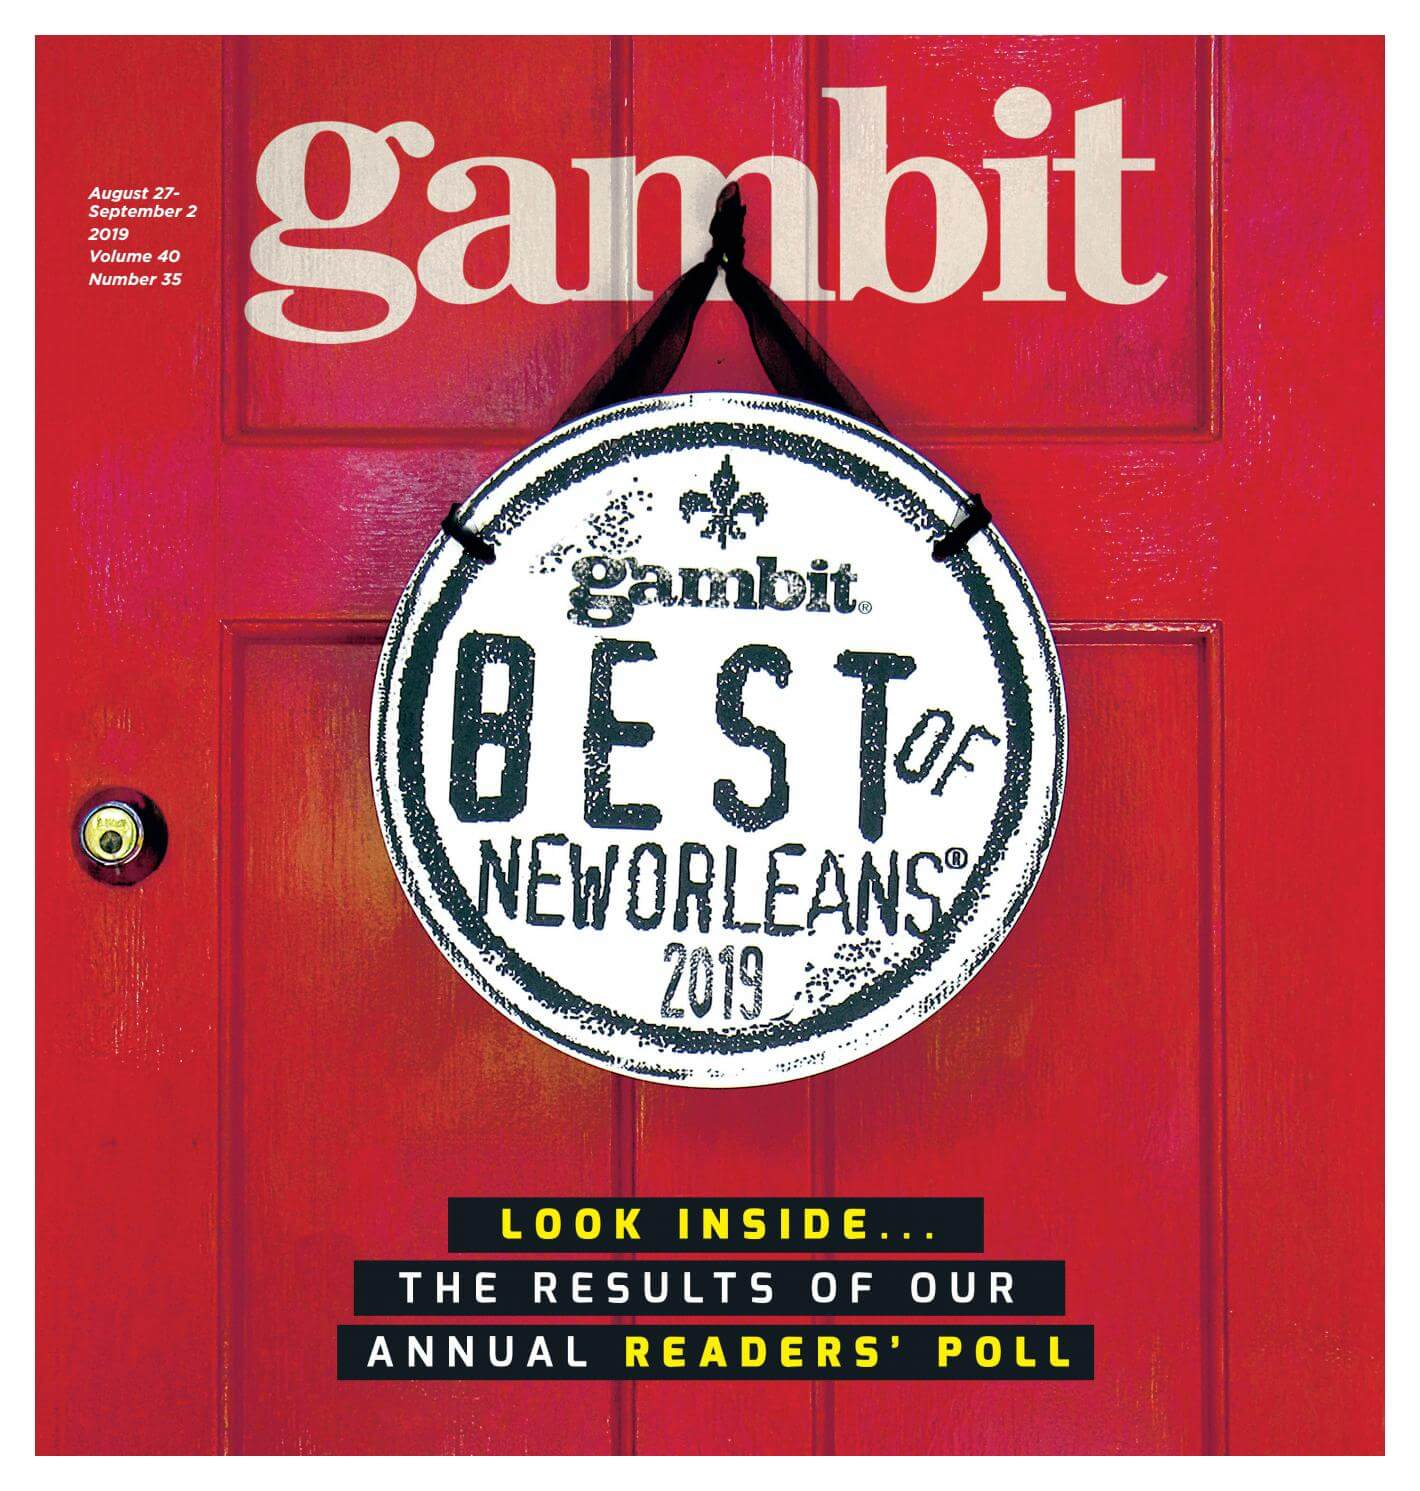 New Orleans Newspapers 08 Gambit